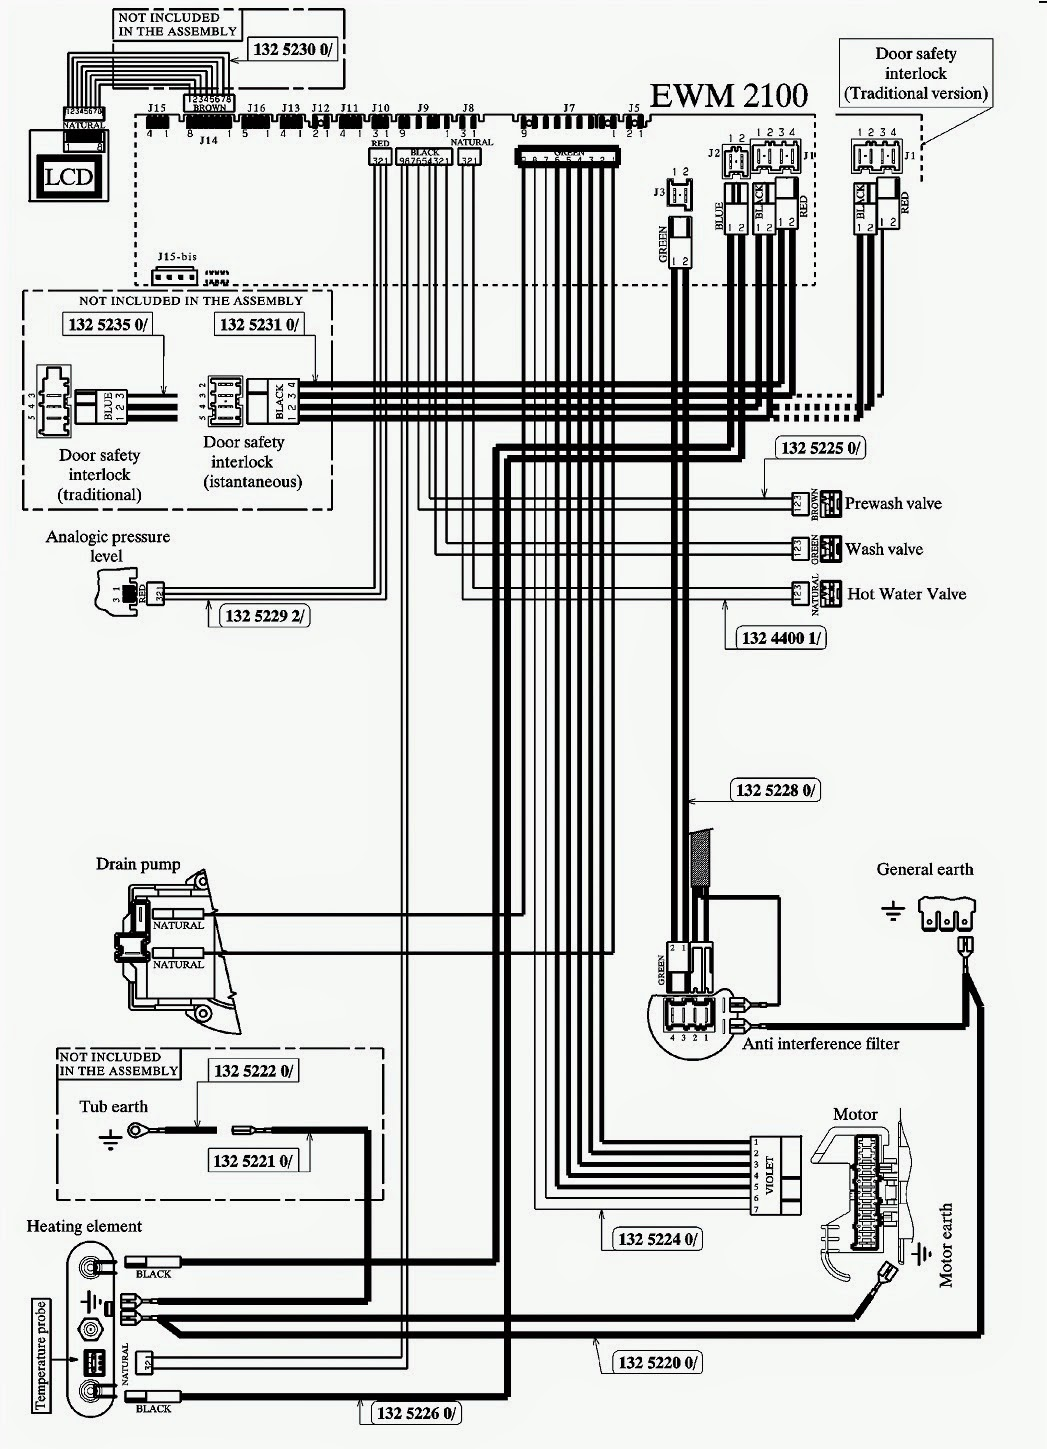 1927 ford model t wiring diagram electrolux washing machine ewfh12280 – ewm2100hec front ...